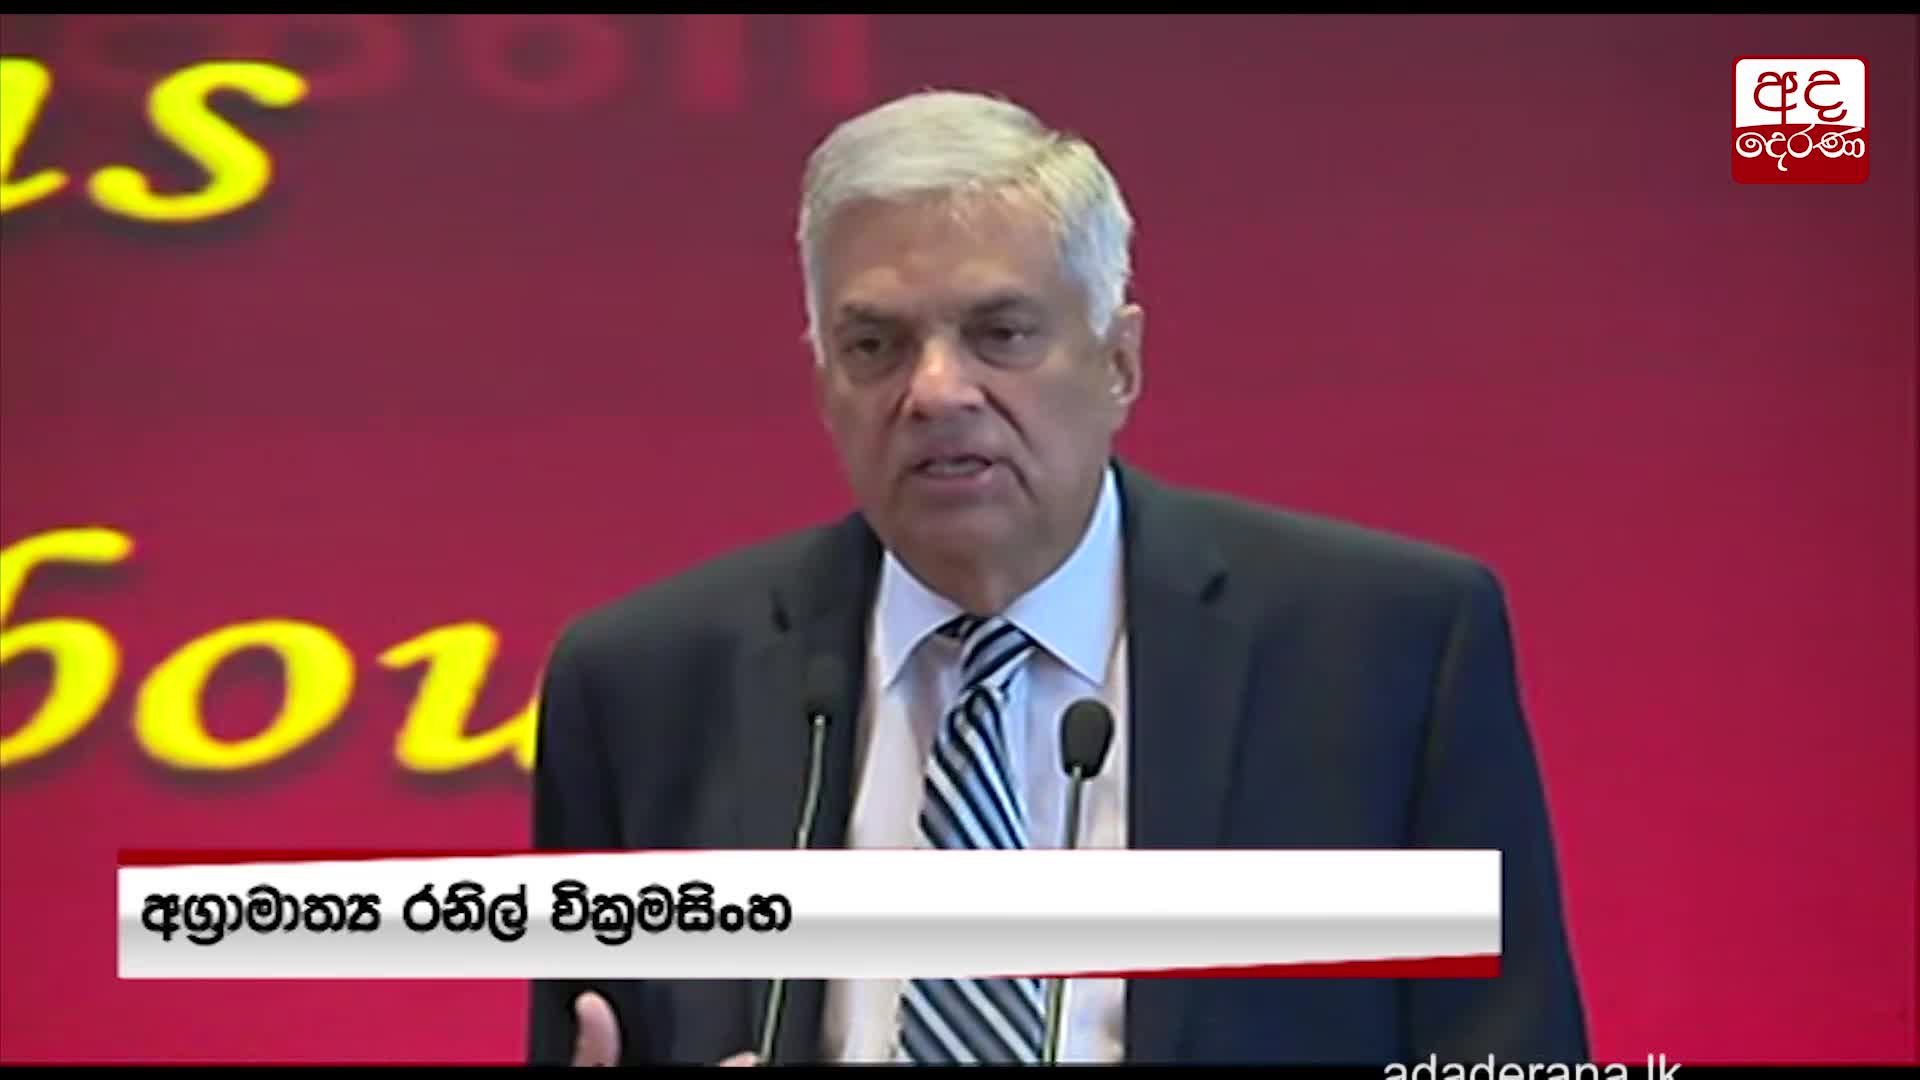 Income of country's people increased by 50–100% - PM